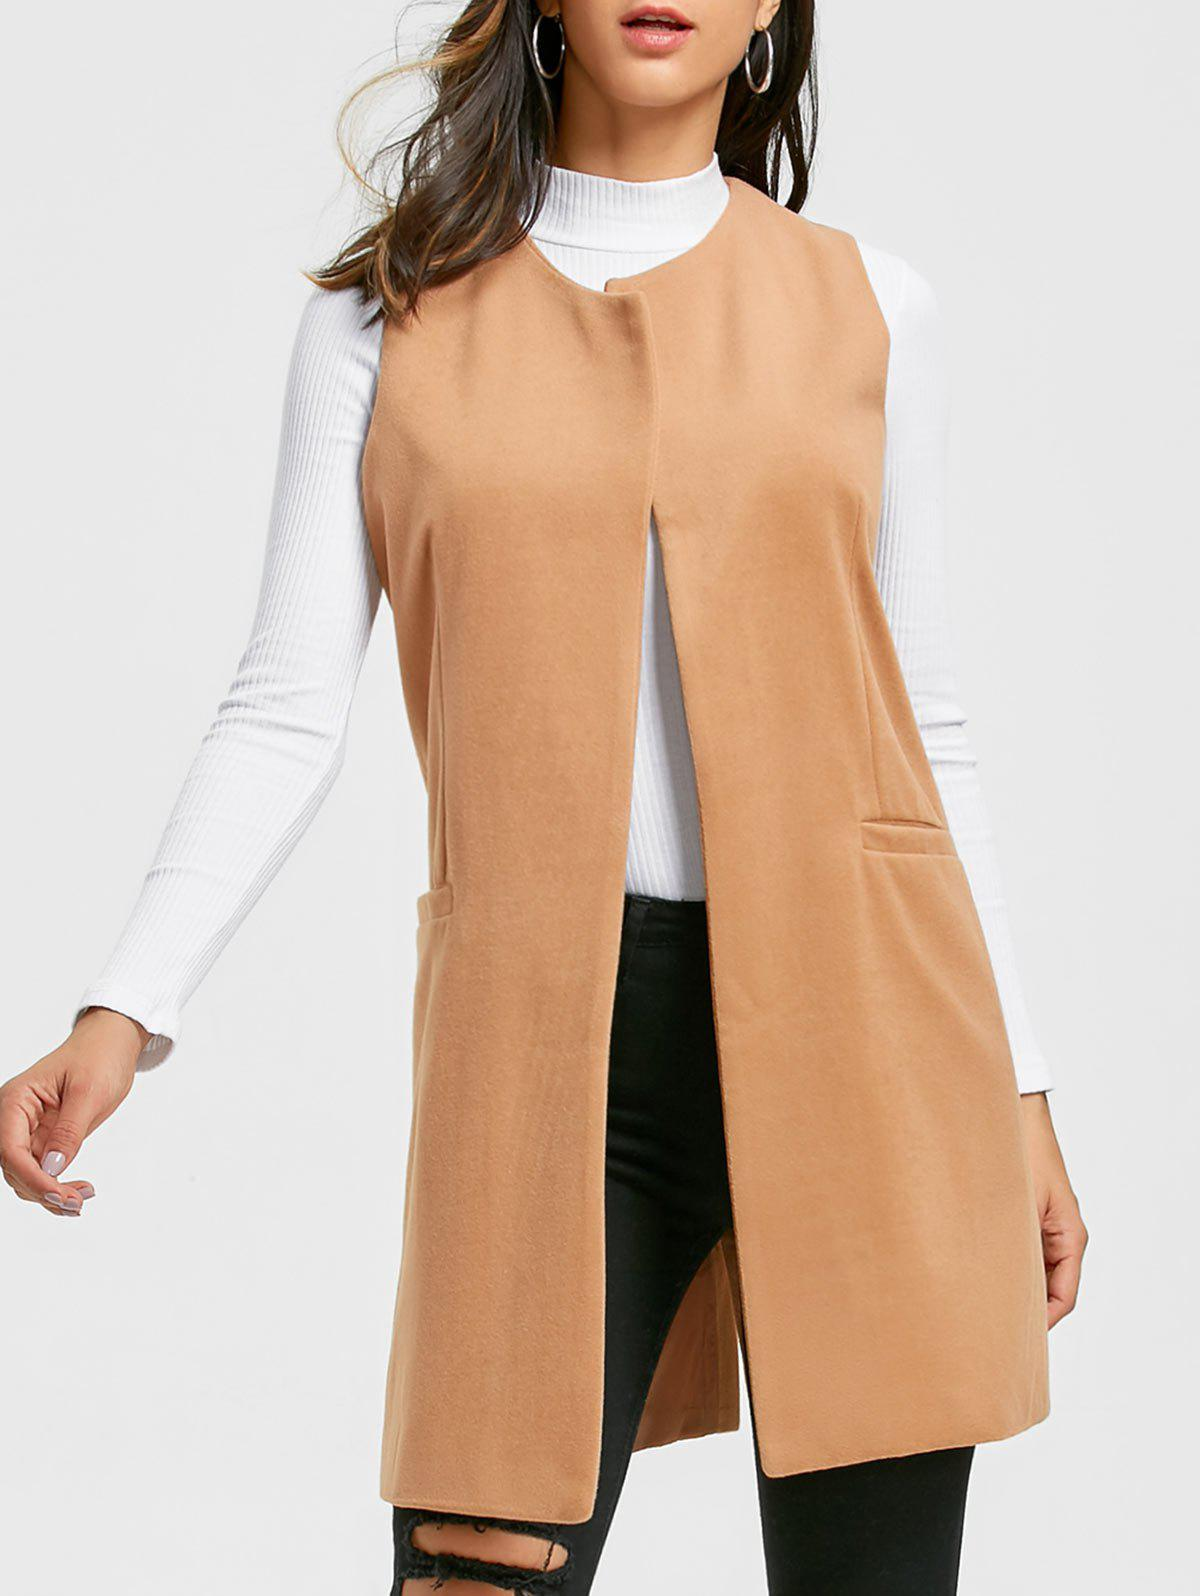 Side Pockets Back Slit Vest - KHAKI S